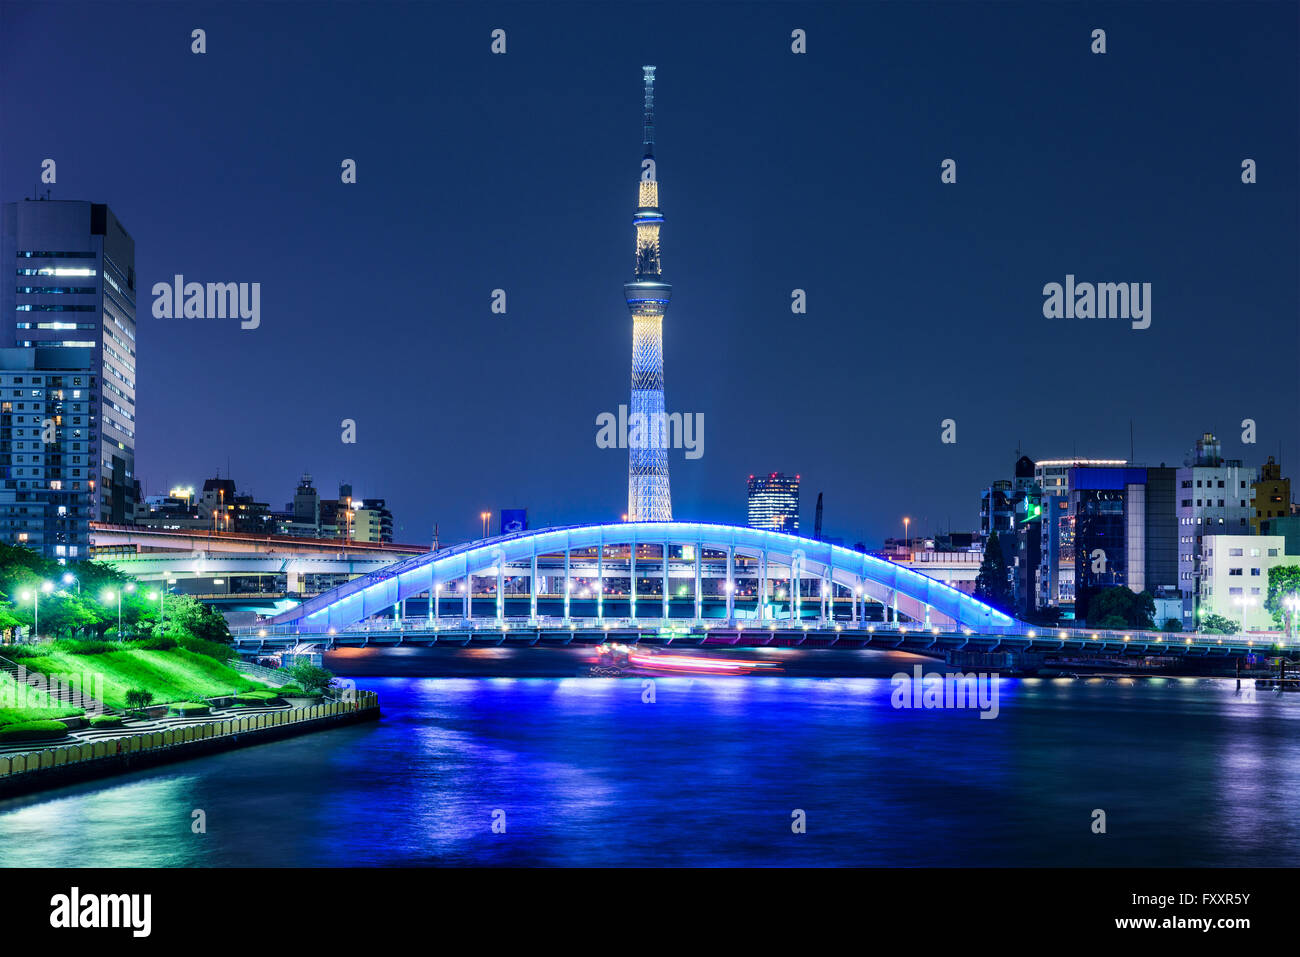 Tokyo, Japan skyline on the Sumida River with the Skytree at night. - Stock Image